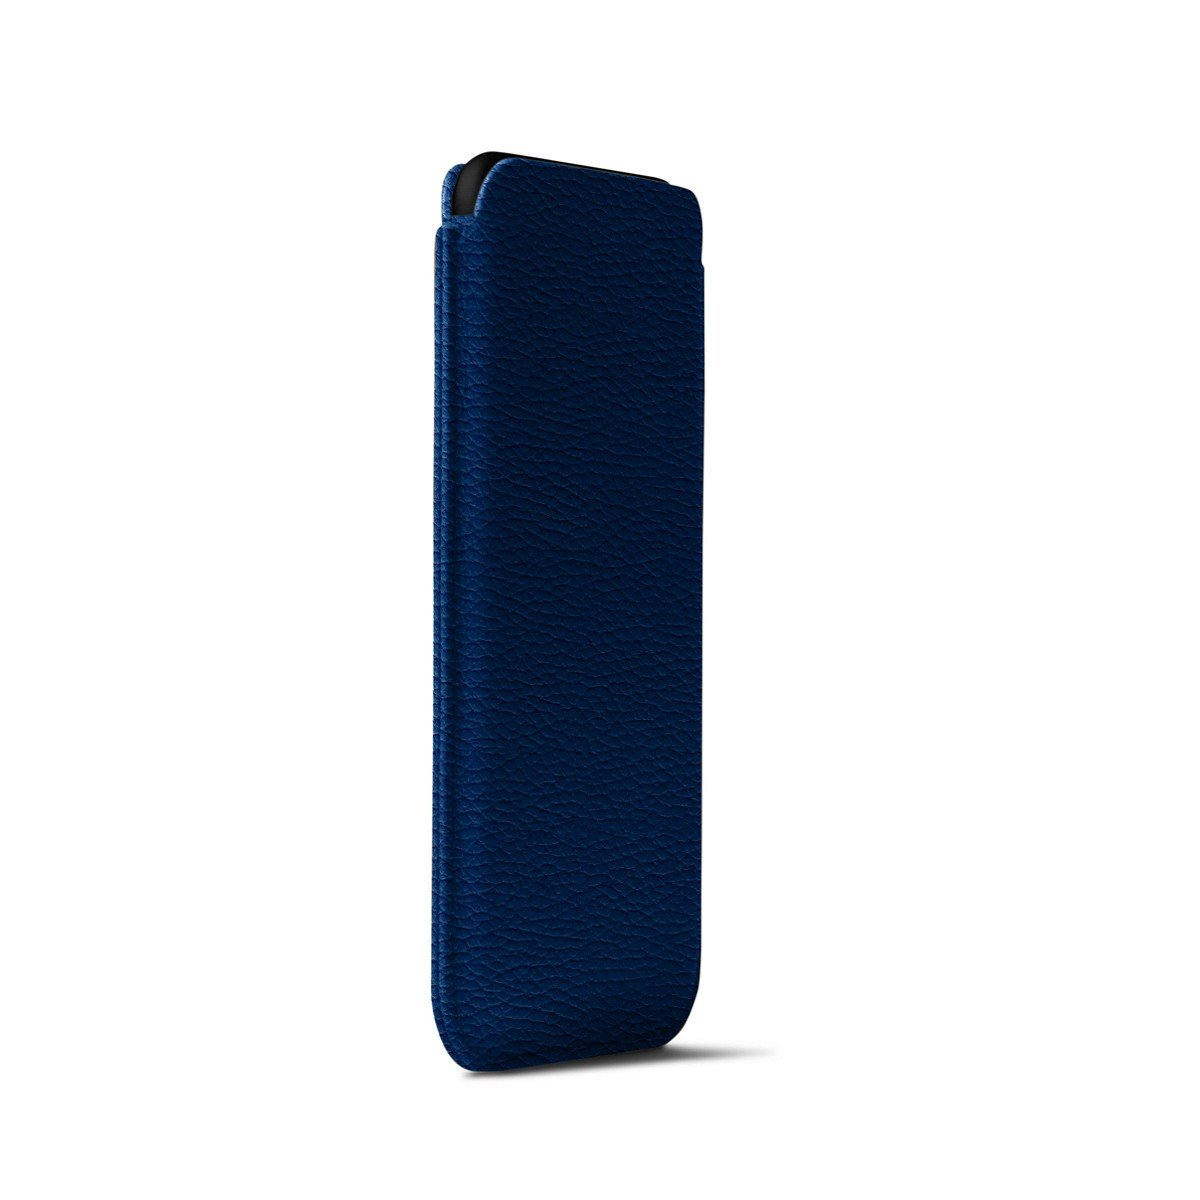 Lucrin - Classic Case for iPhone X - Royal Blue - Granulated Leather by Lucrin (Image #5)